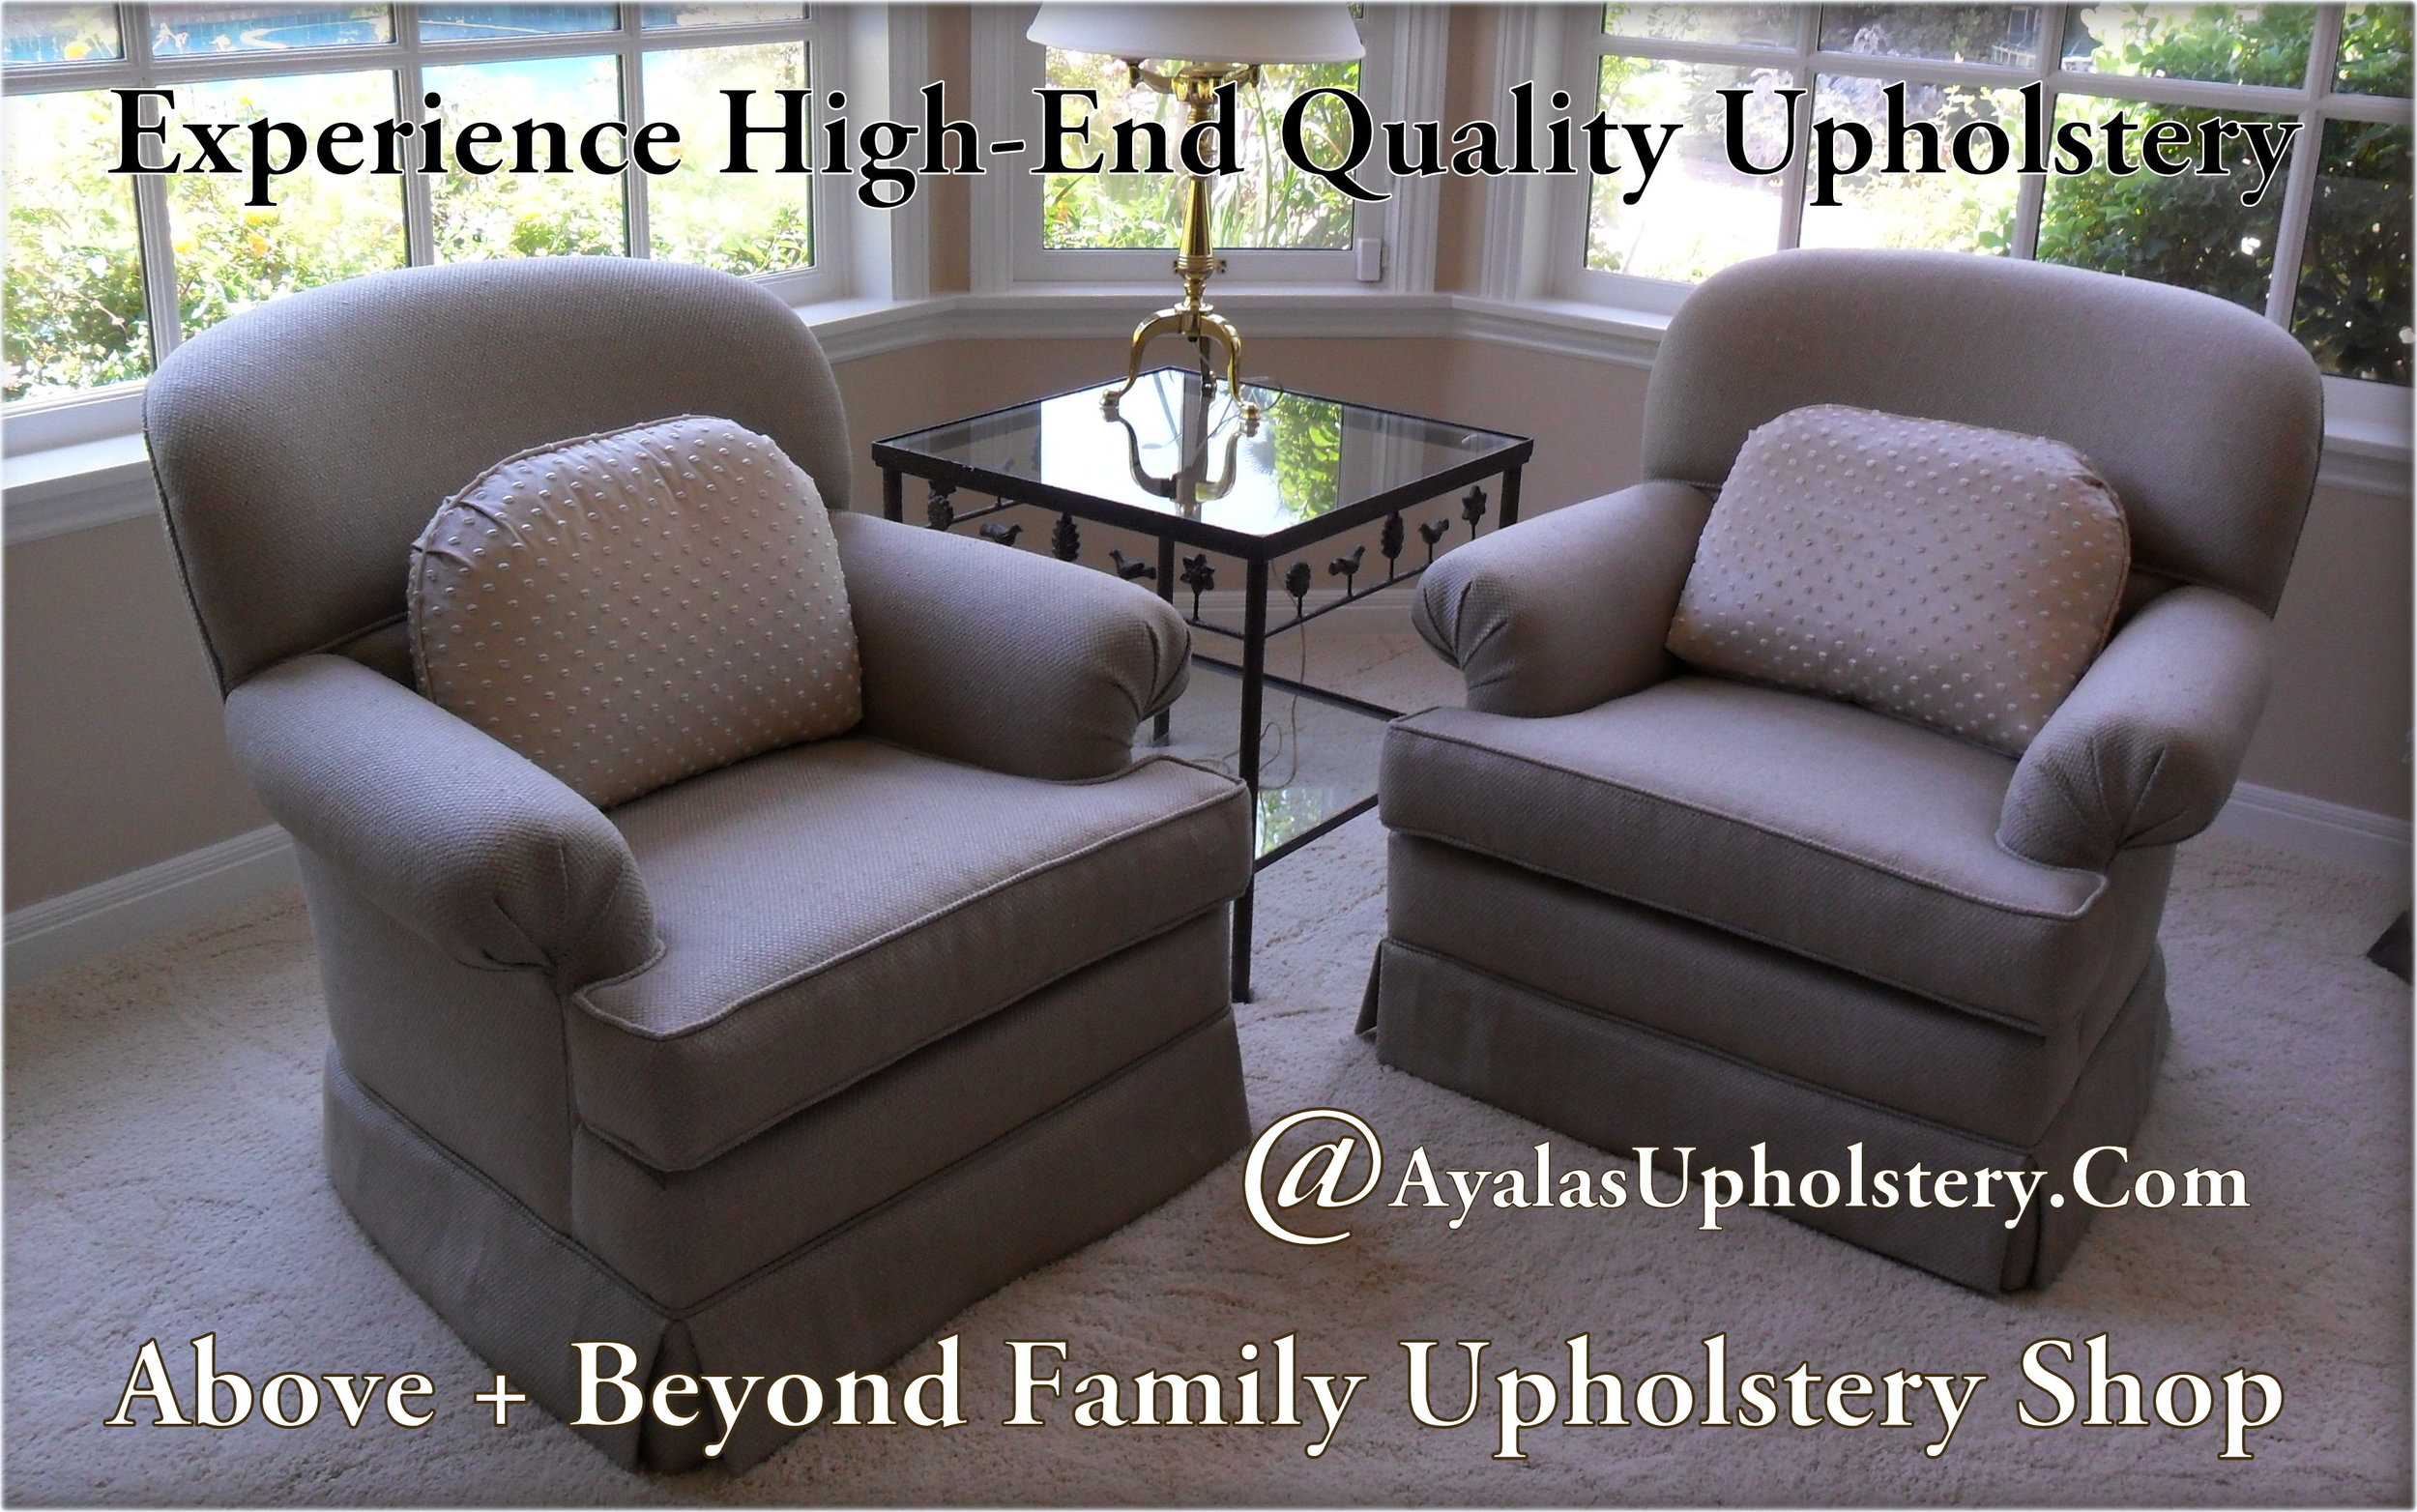 above and beyond family upholstery.jpg